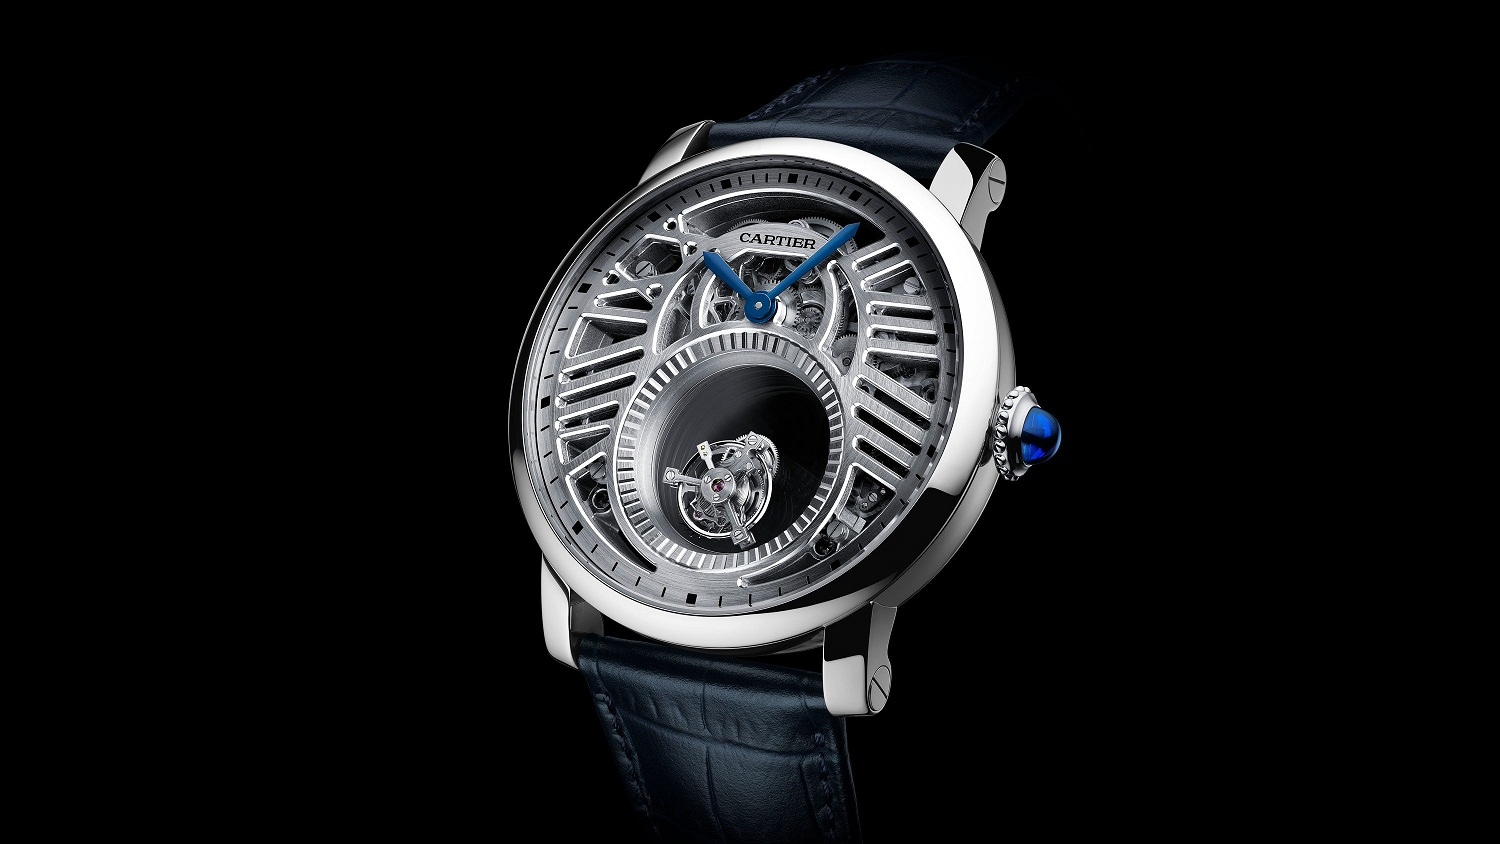 The Cartier Rotonde de Cartier Skeleton Extraordinary Double Tourbillon